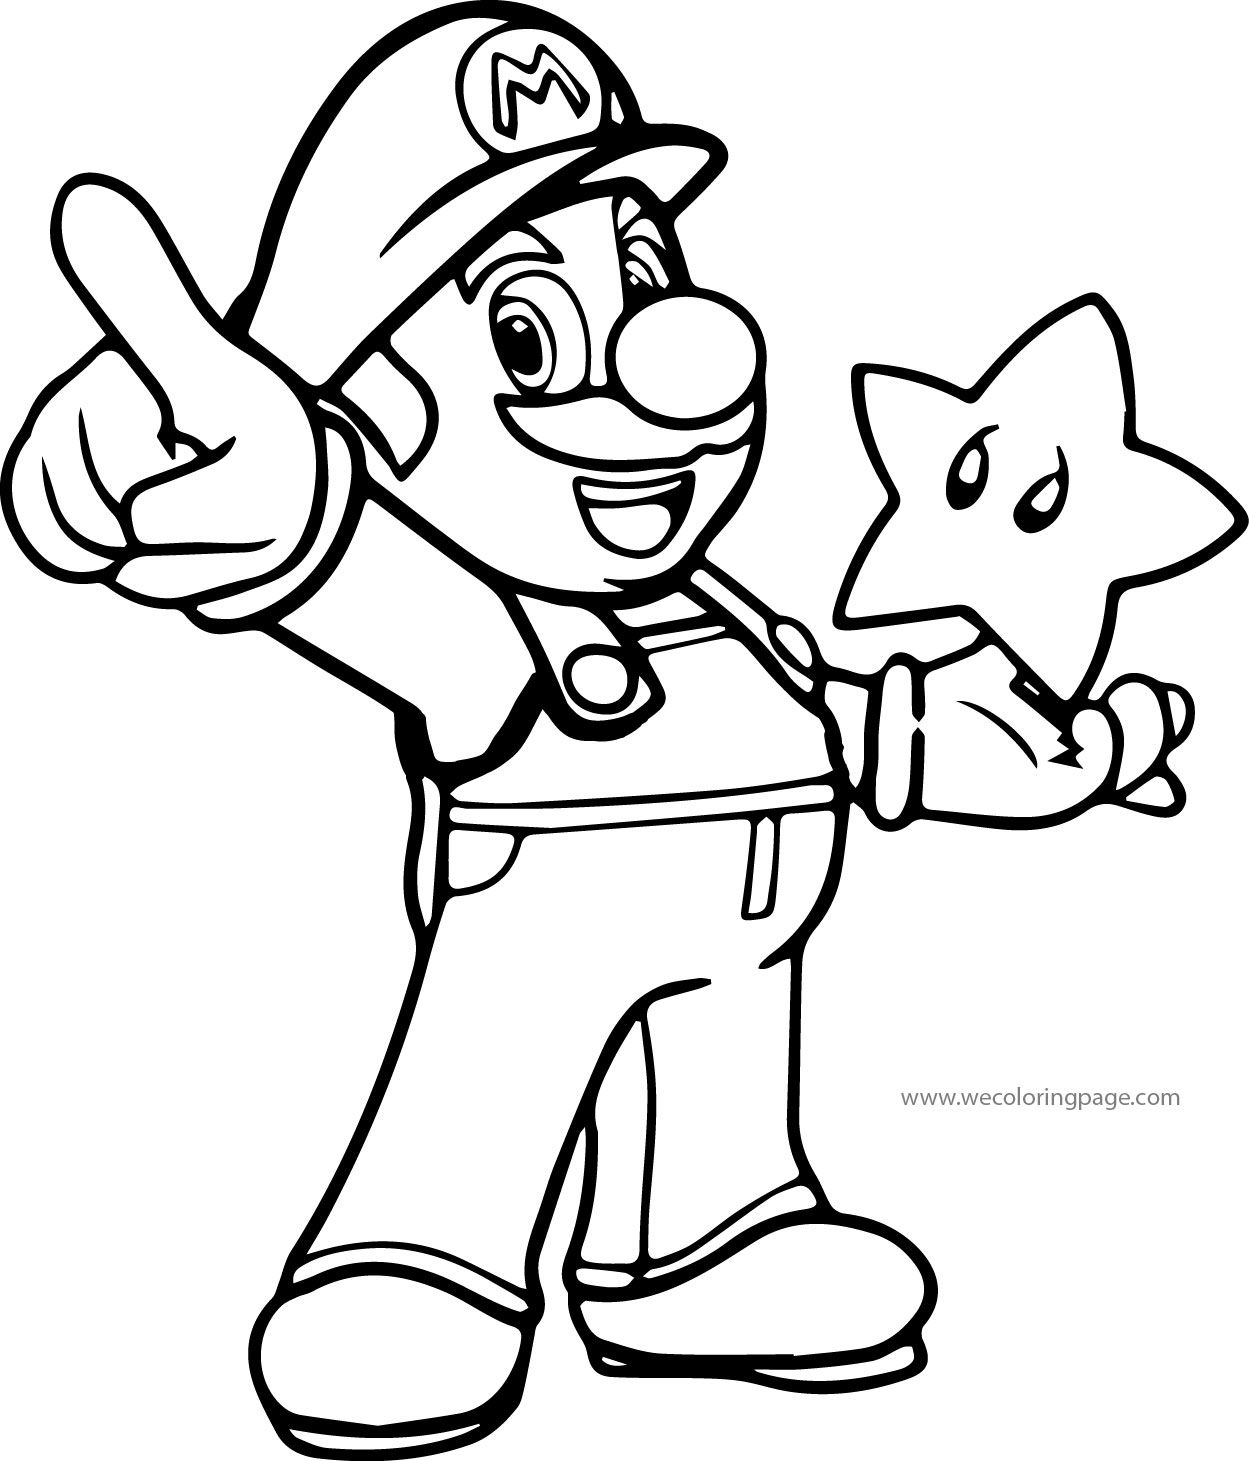 Super Mario Coloring Page Coloring books Birthdays and Adult coloring